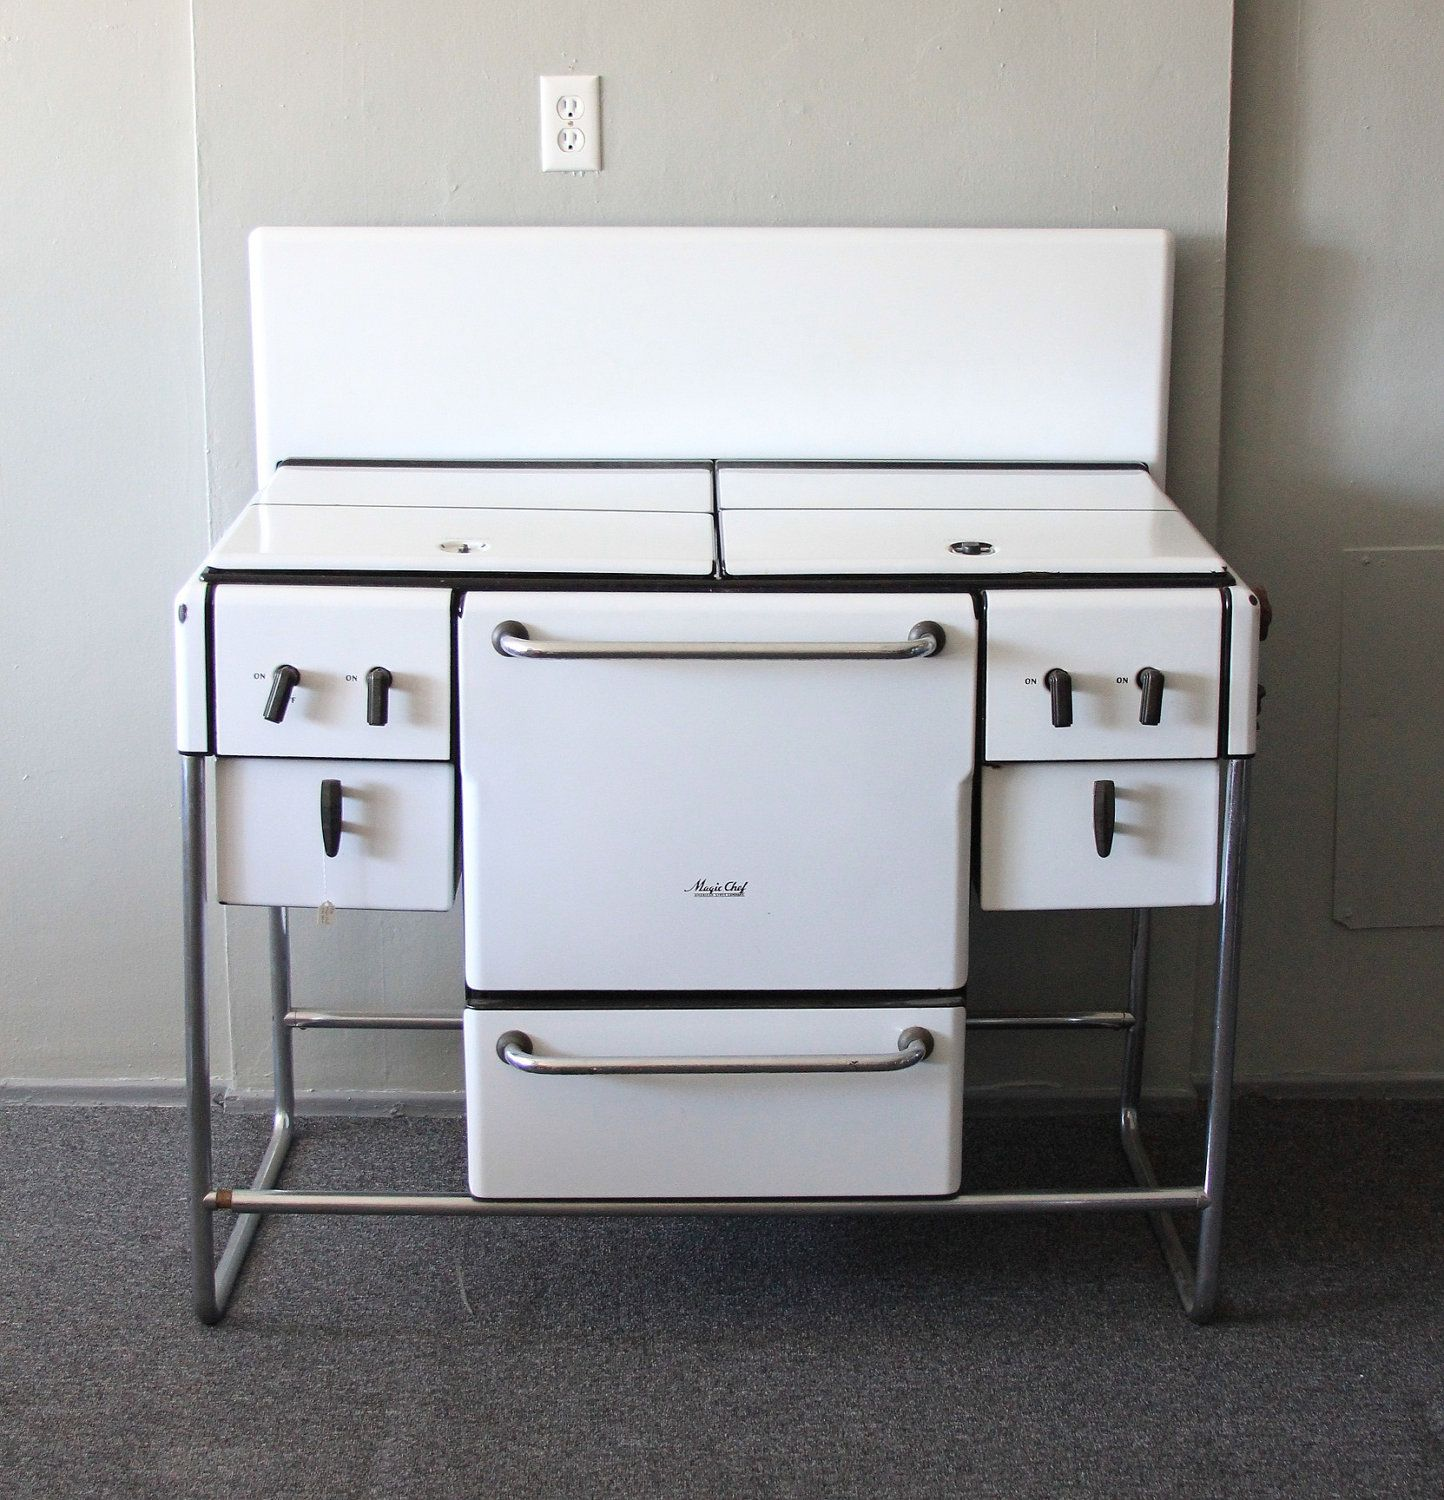 via bklyn contessa magic chef gas stove